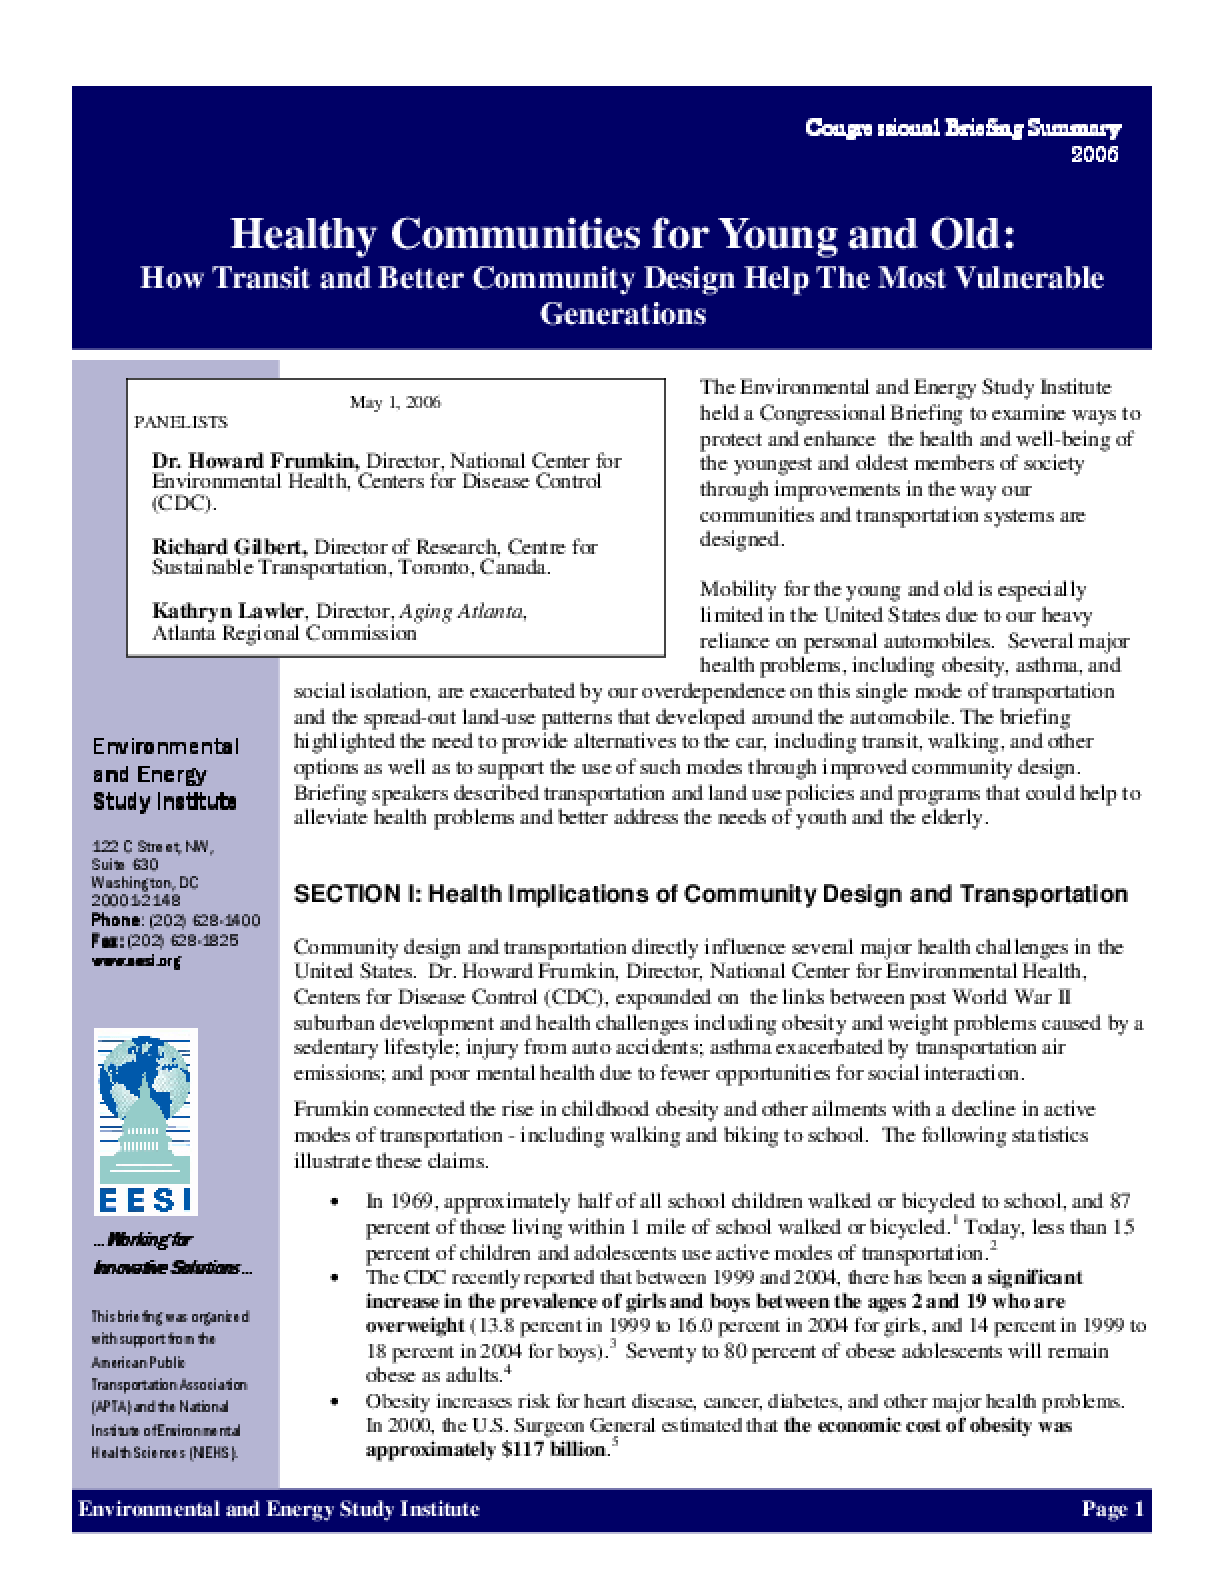 Healthy Communities for Young and Old: How Transit and Better Community Design Help The Most Vulnerable Generations